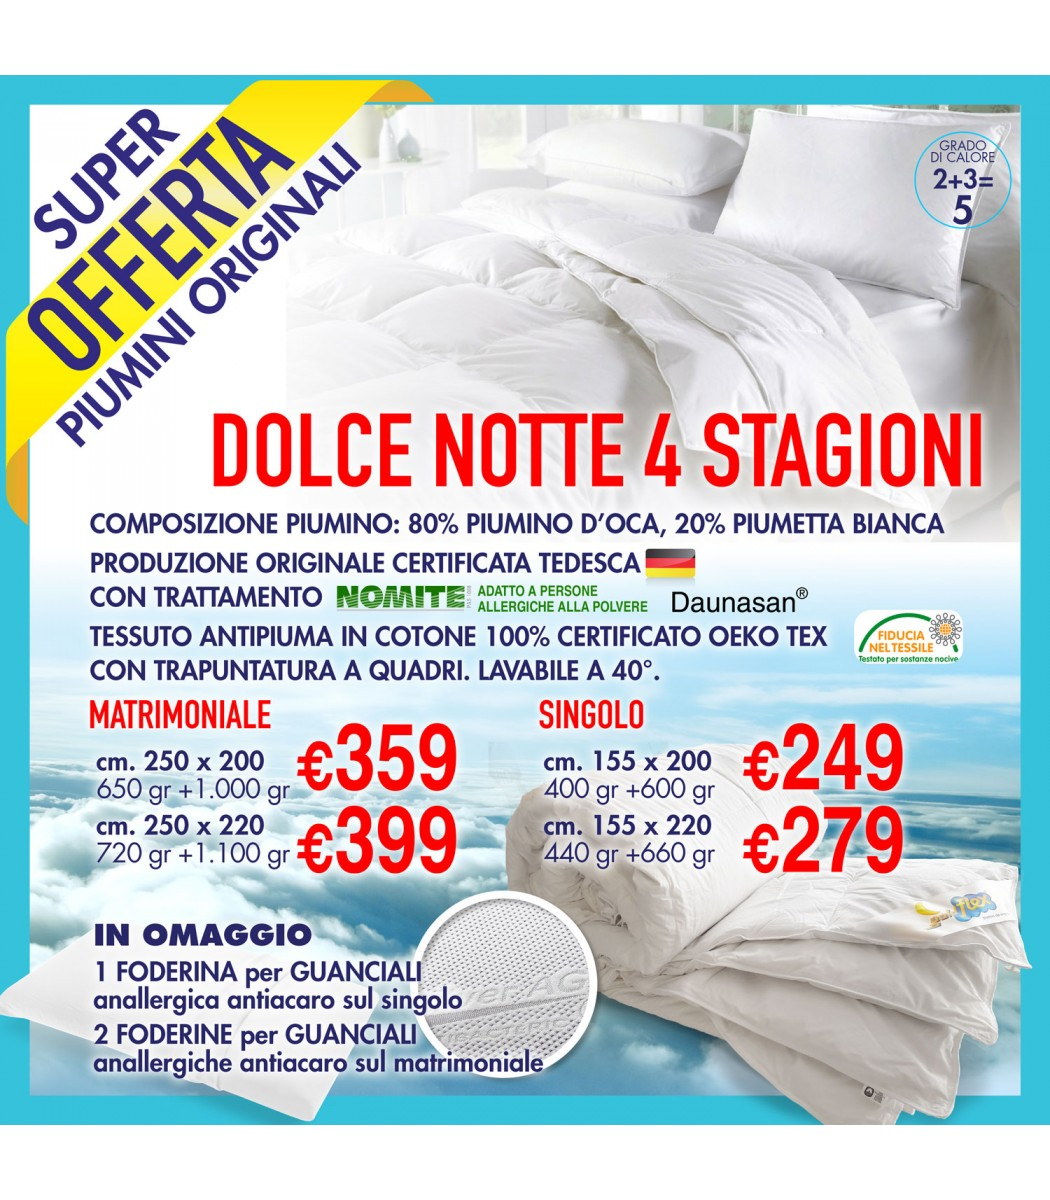 buy popular b6b49 a56f0 Piumino Dolce Notte 4 Stagioni